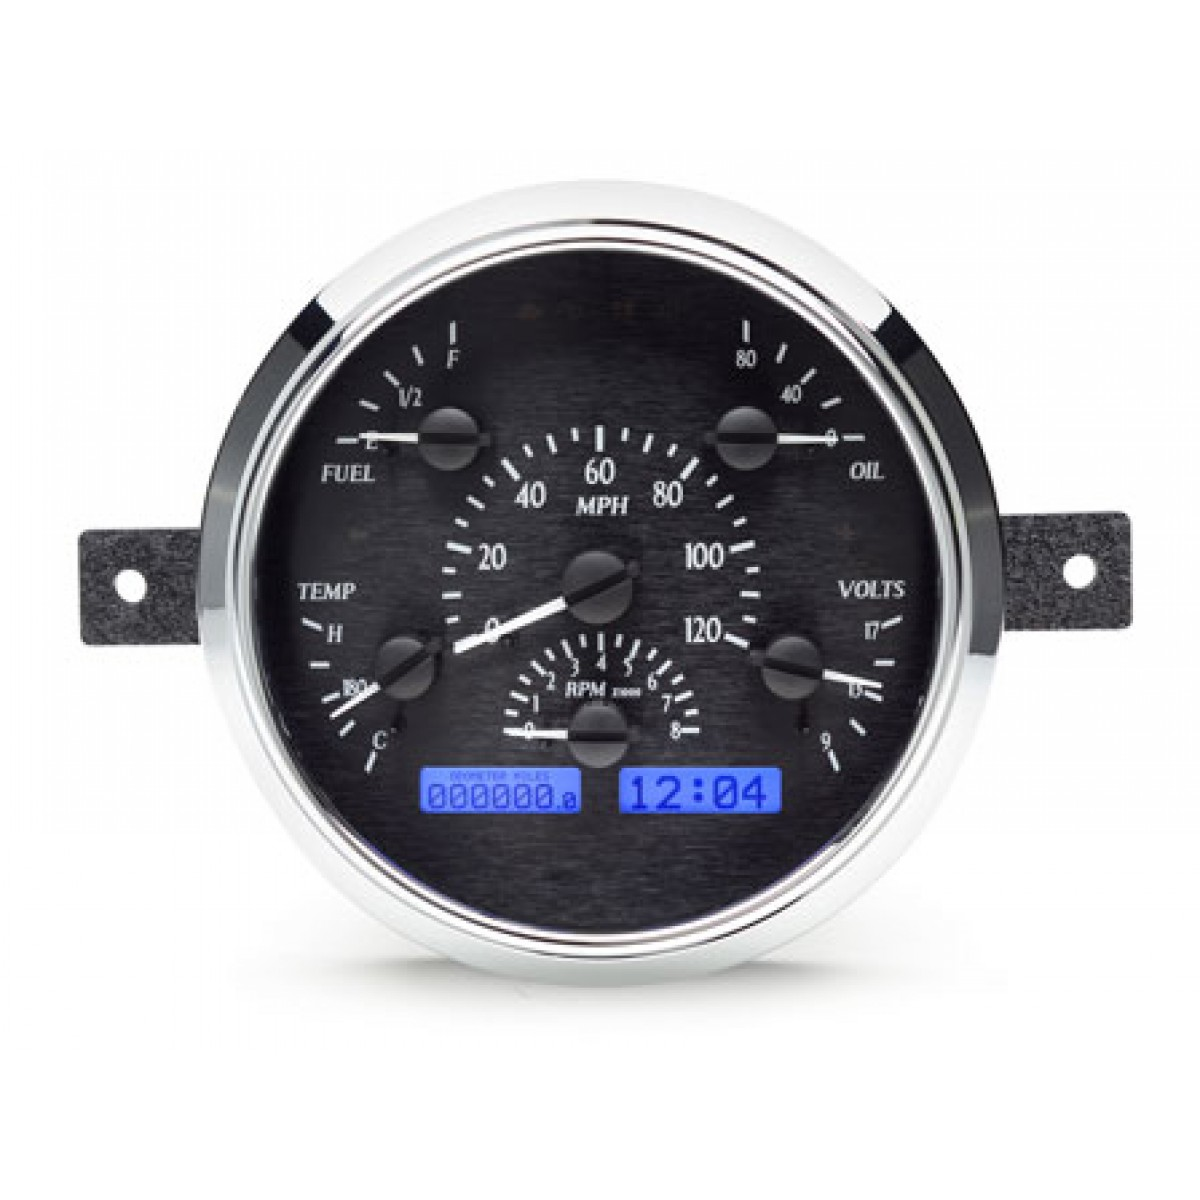 Digital Gauge Cluster : Ford vhx gauge instruments dakota digital f